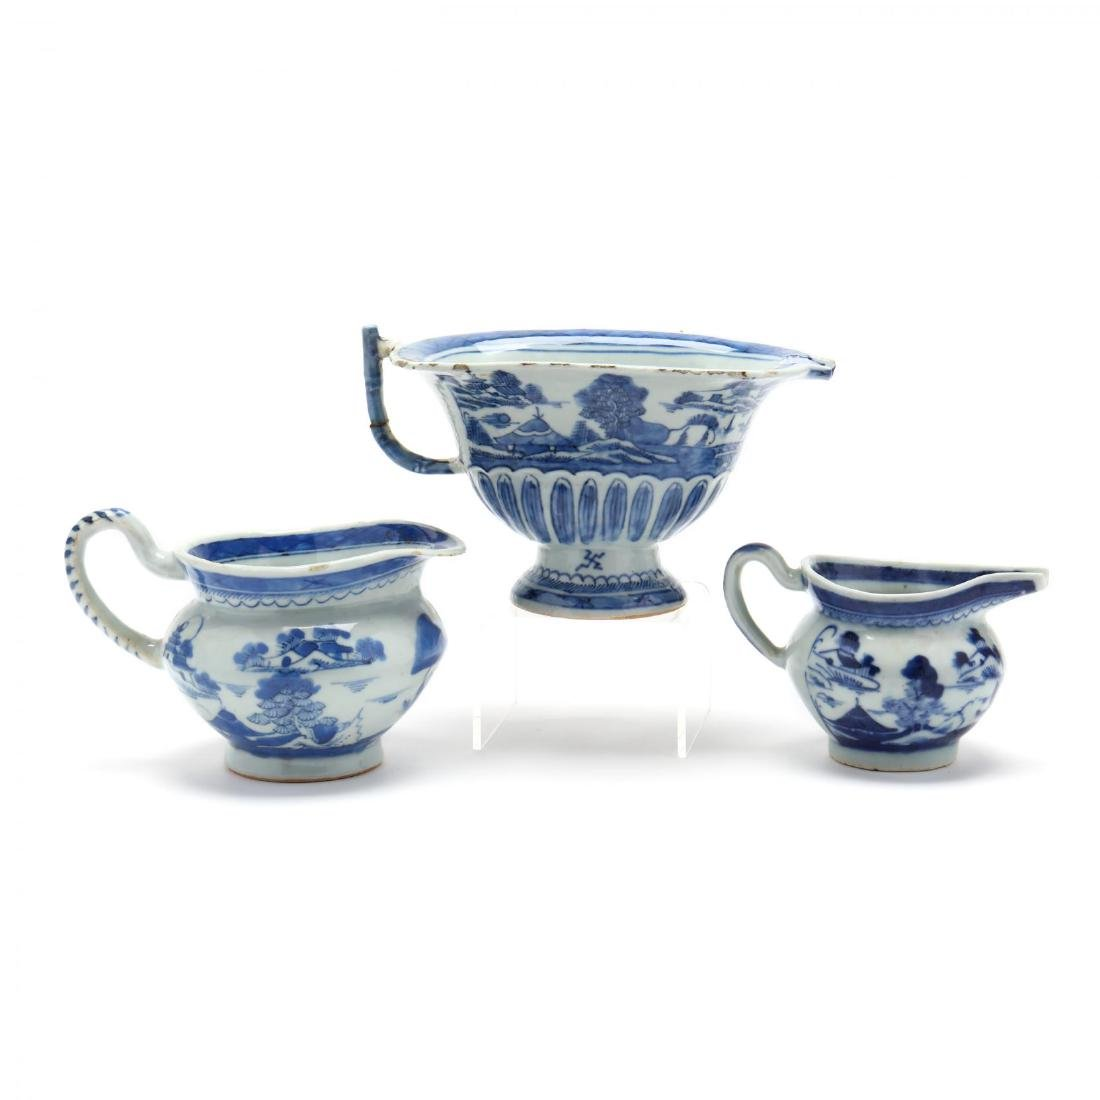 A Group of Canton Export Porcelain - 2